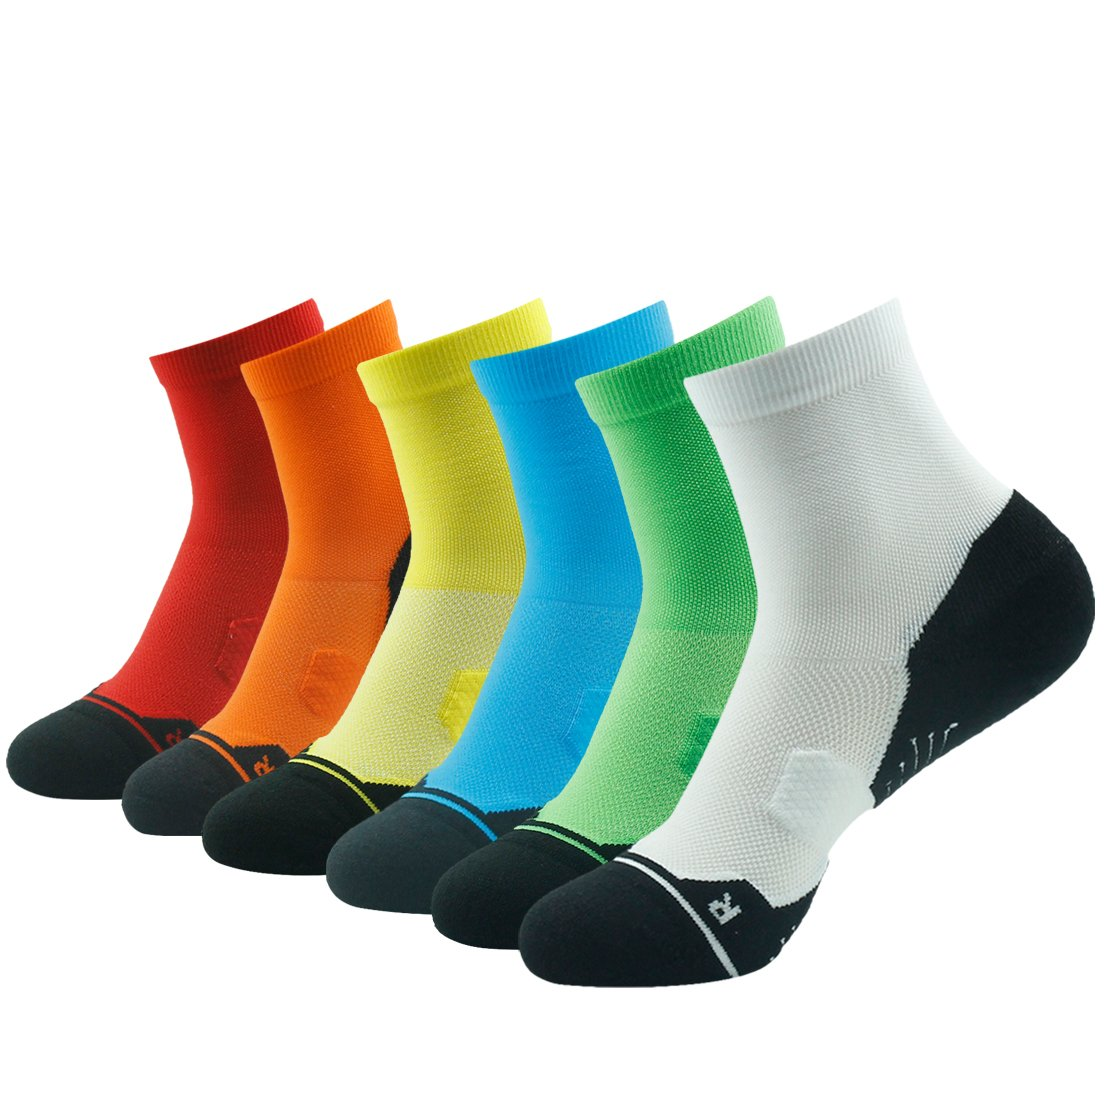 6 Pair bluee&green&orange&white&red&yellow Running Socks Support, HUSO Men Women High Performance Arch Compression Cushioned Quarter Socks 1,2,3,4,6 Pairs